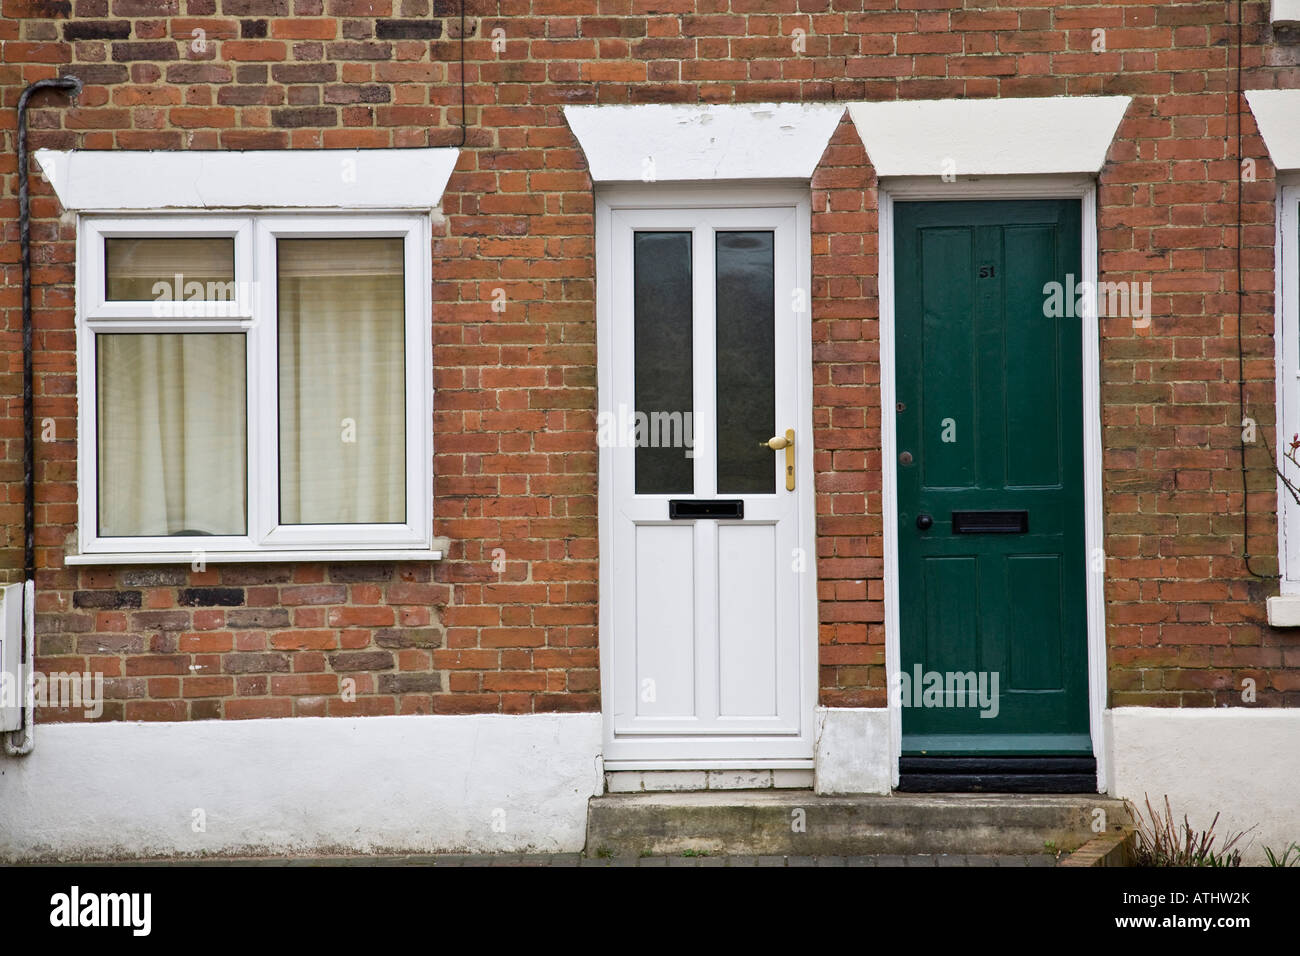 Replacement Window Stockfotos & Replacement Window Bilder - Alamy